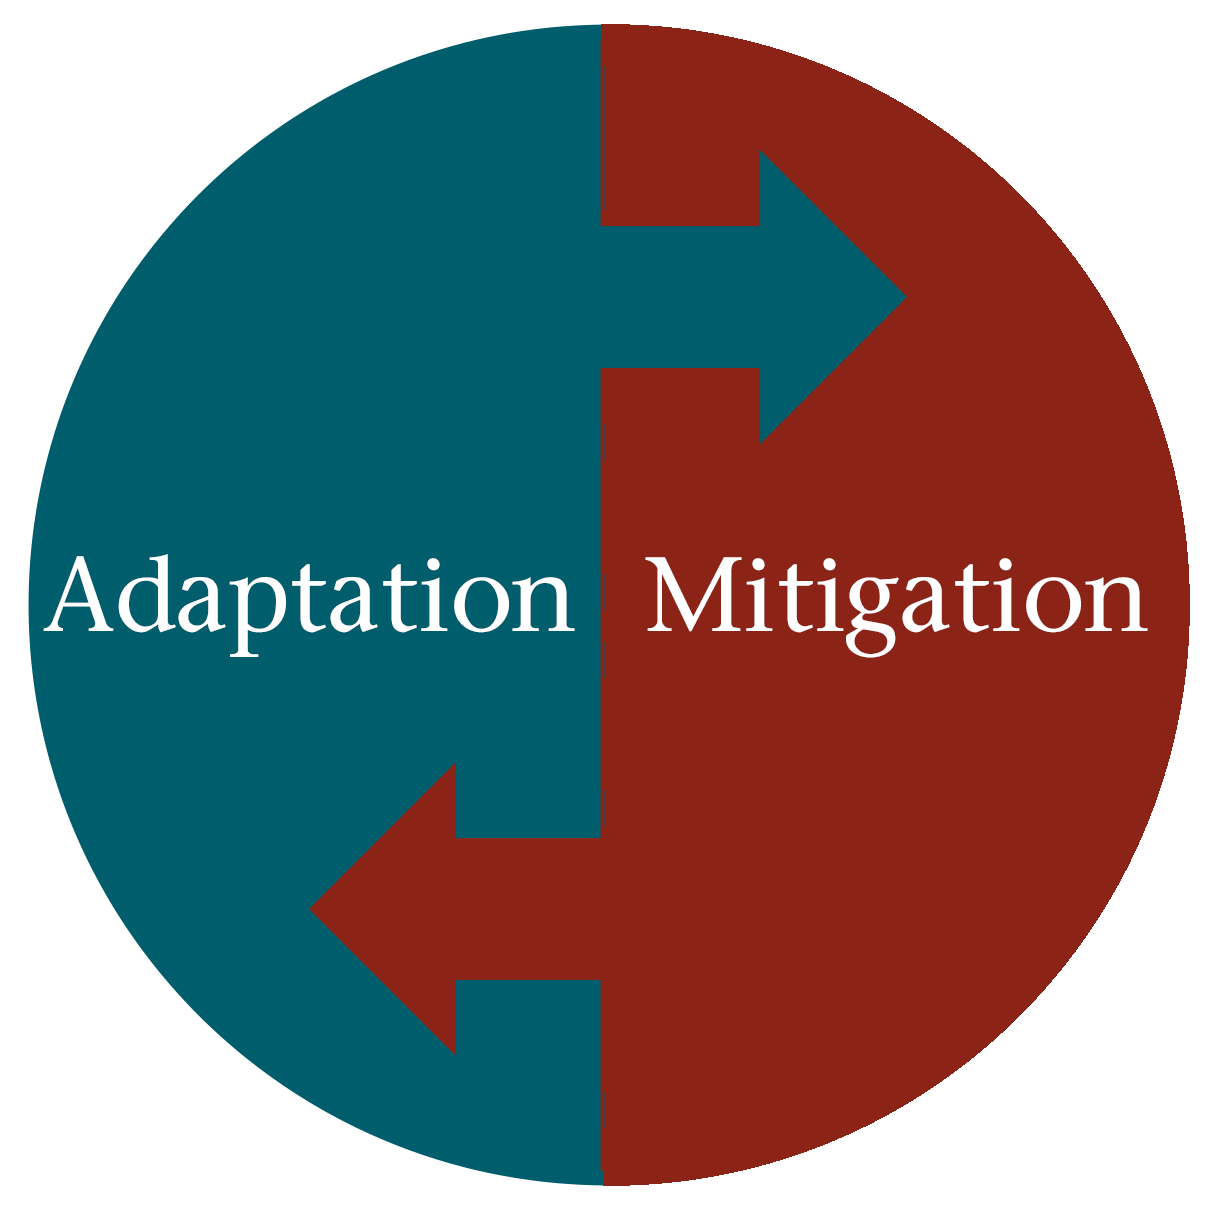 mitigation adaptation circle